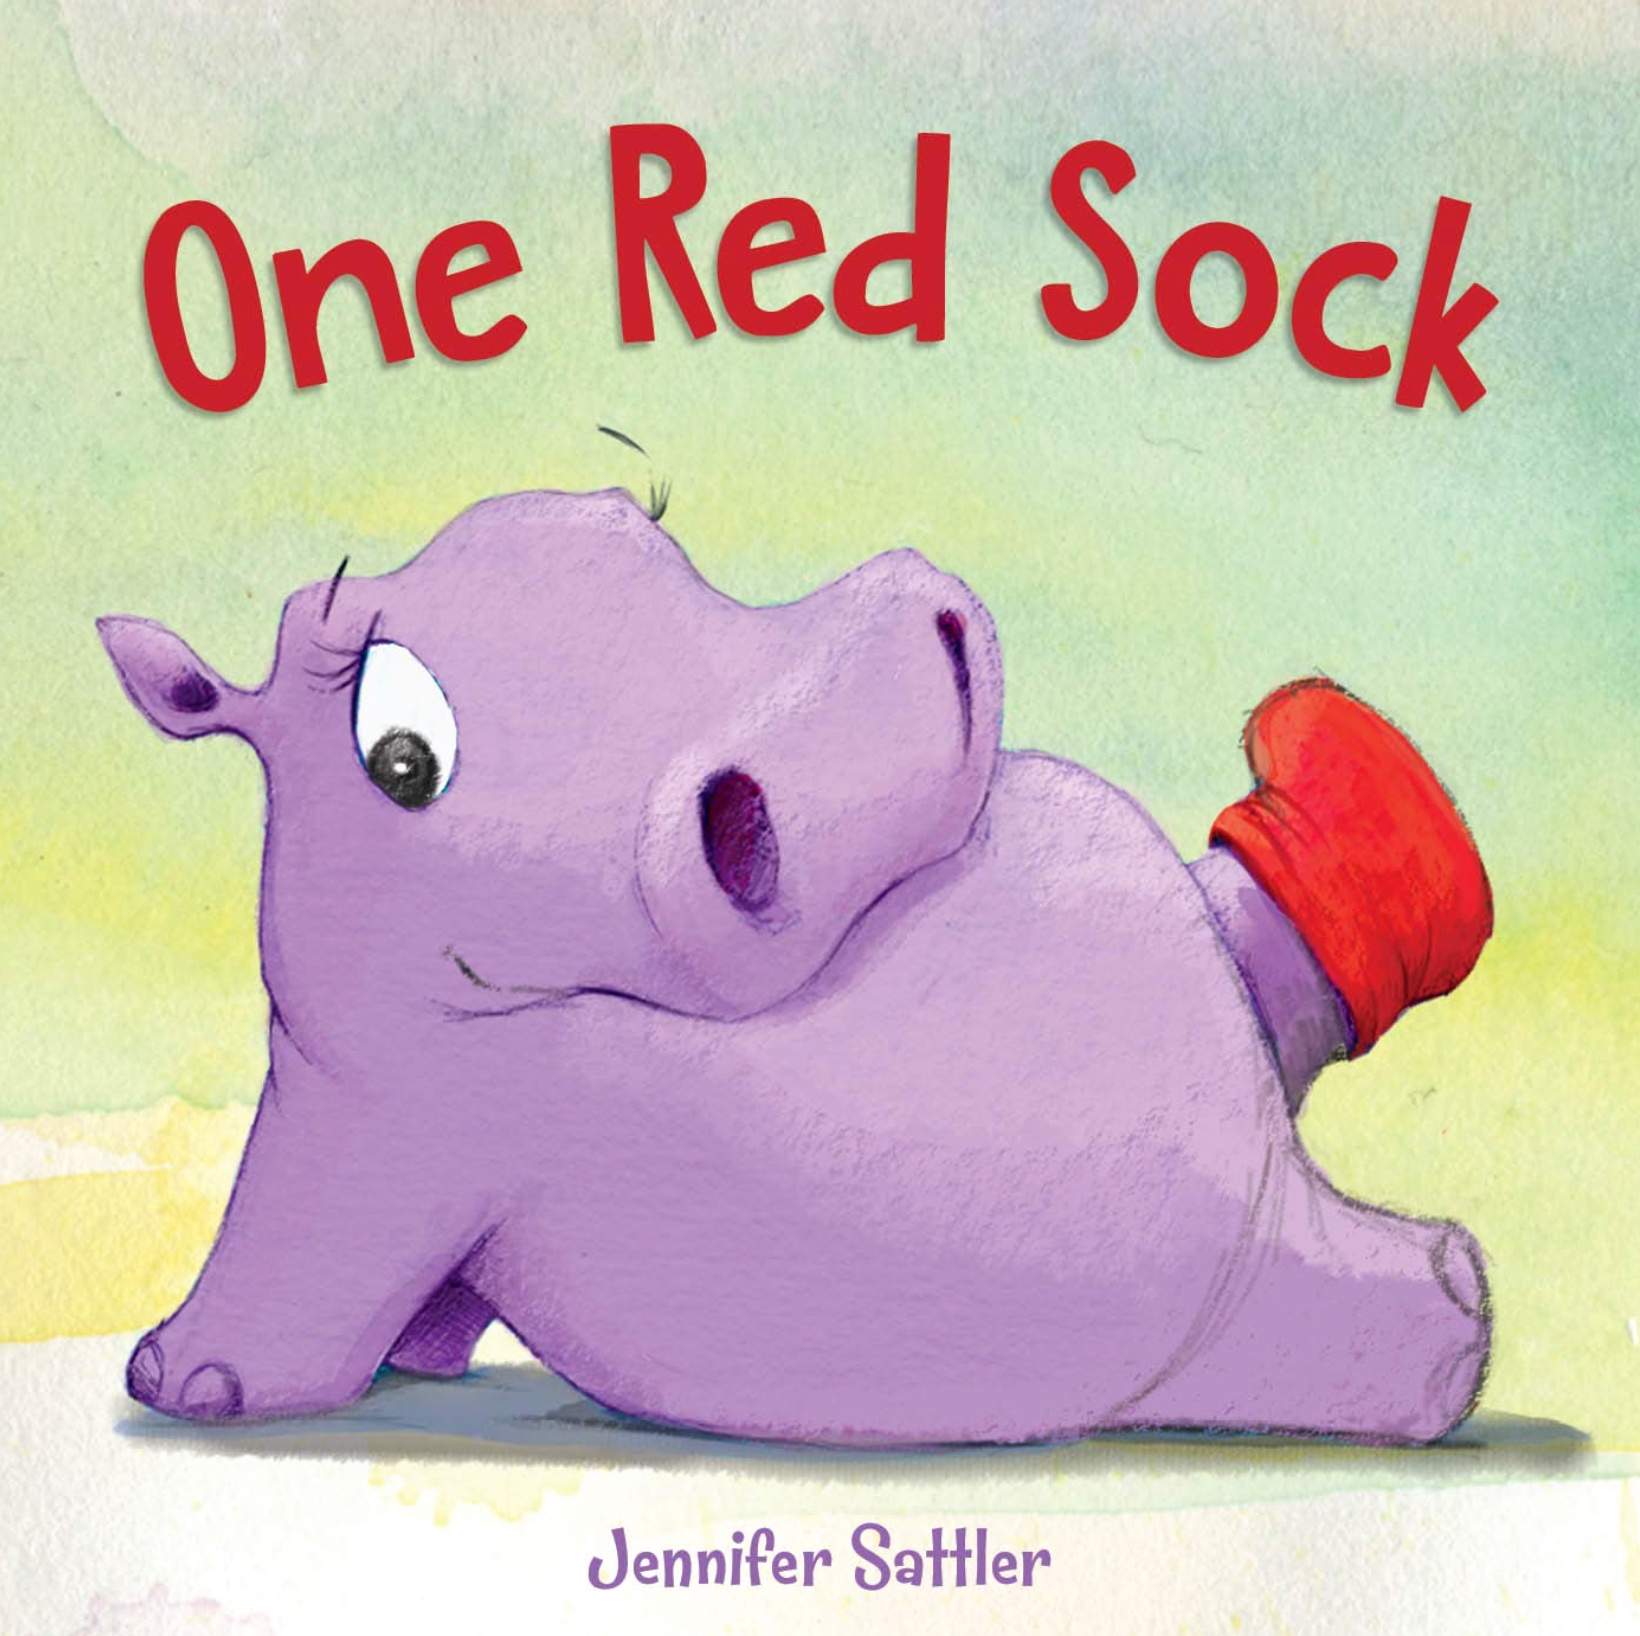 """Kirkus says: - """" 'Well, it's not perfect. / And it's definitely not red. // But at least it matches / my room!' she said."""" Young readers will survey the frustrated hippo's increasingly cluttered digs with glee…and likely be unsurprised to discover (once she's tottered off with a slipper on one foot and a spike heel on the other) that fugitive red sock crammed into a chair cushion  . . .  """"try, try again"""" with apparel choices (or anything else, for that matter) can lead to success, or at least some pleasant surprises, may inspire budding fashionistas to think outside the dresser drawer."""